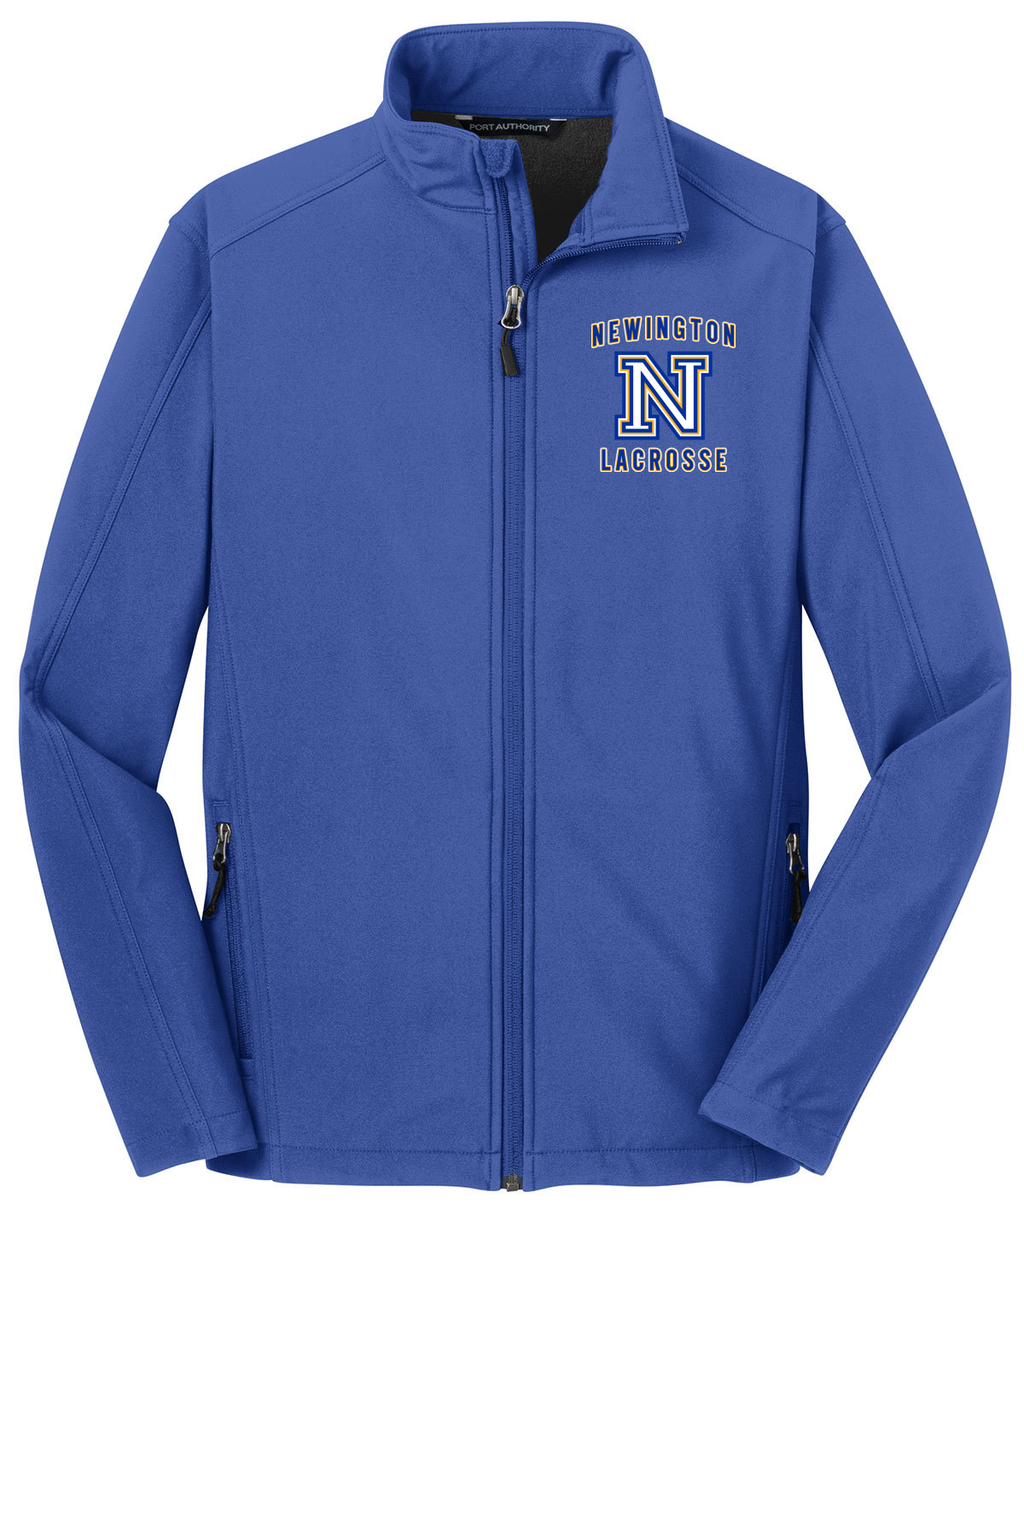 Newington Lacrosse Royal Soft Shell Jacket